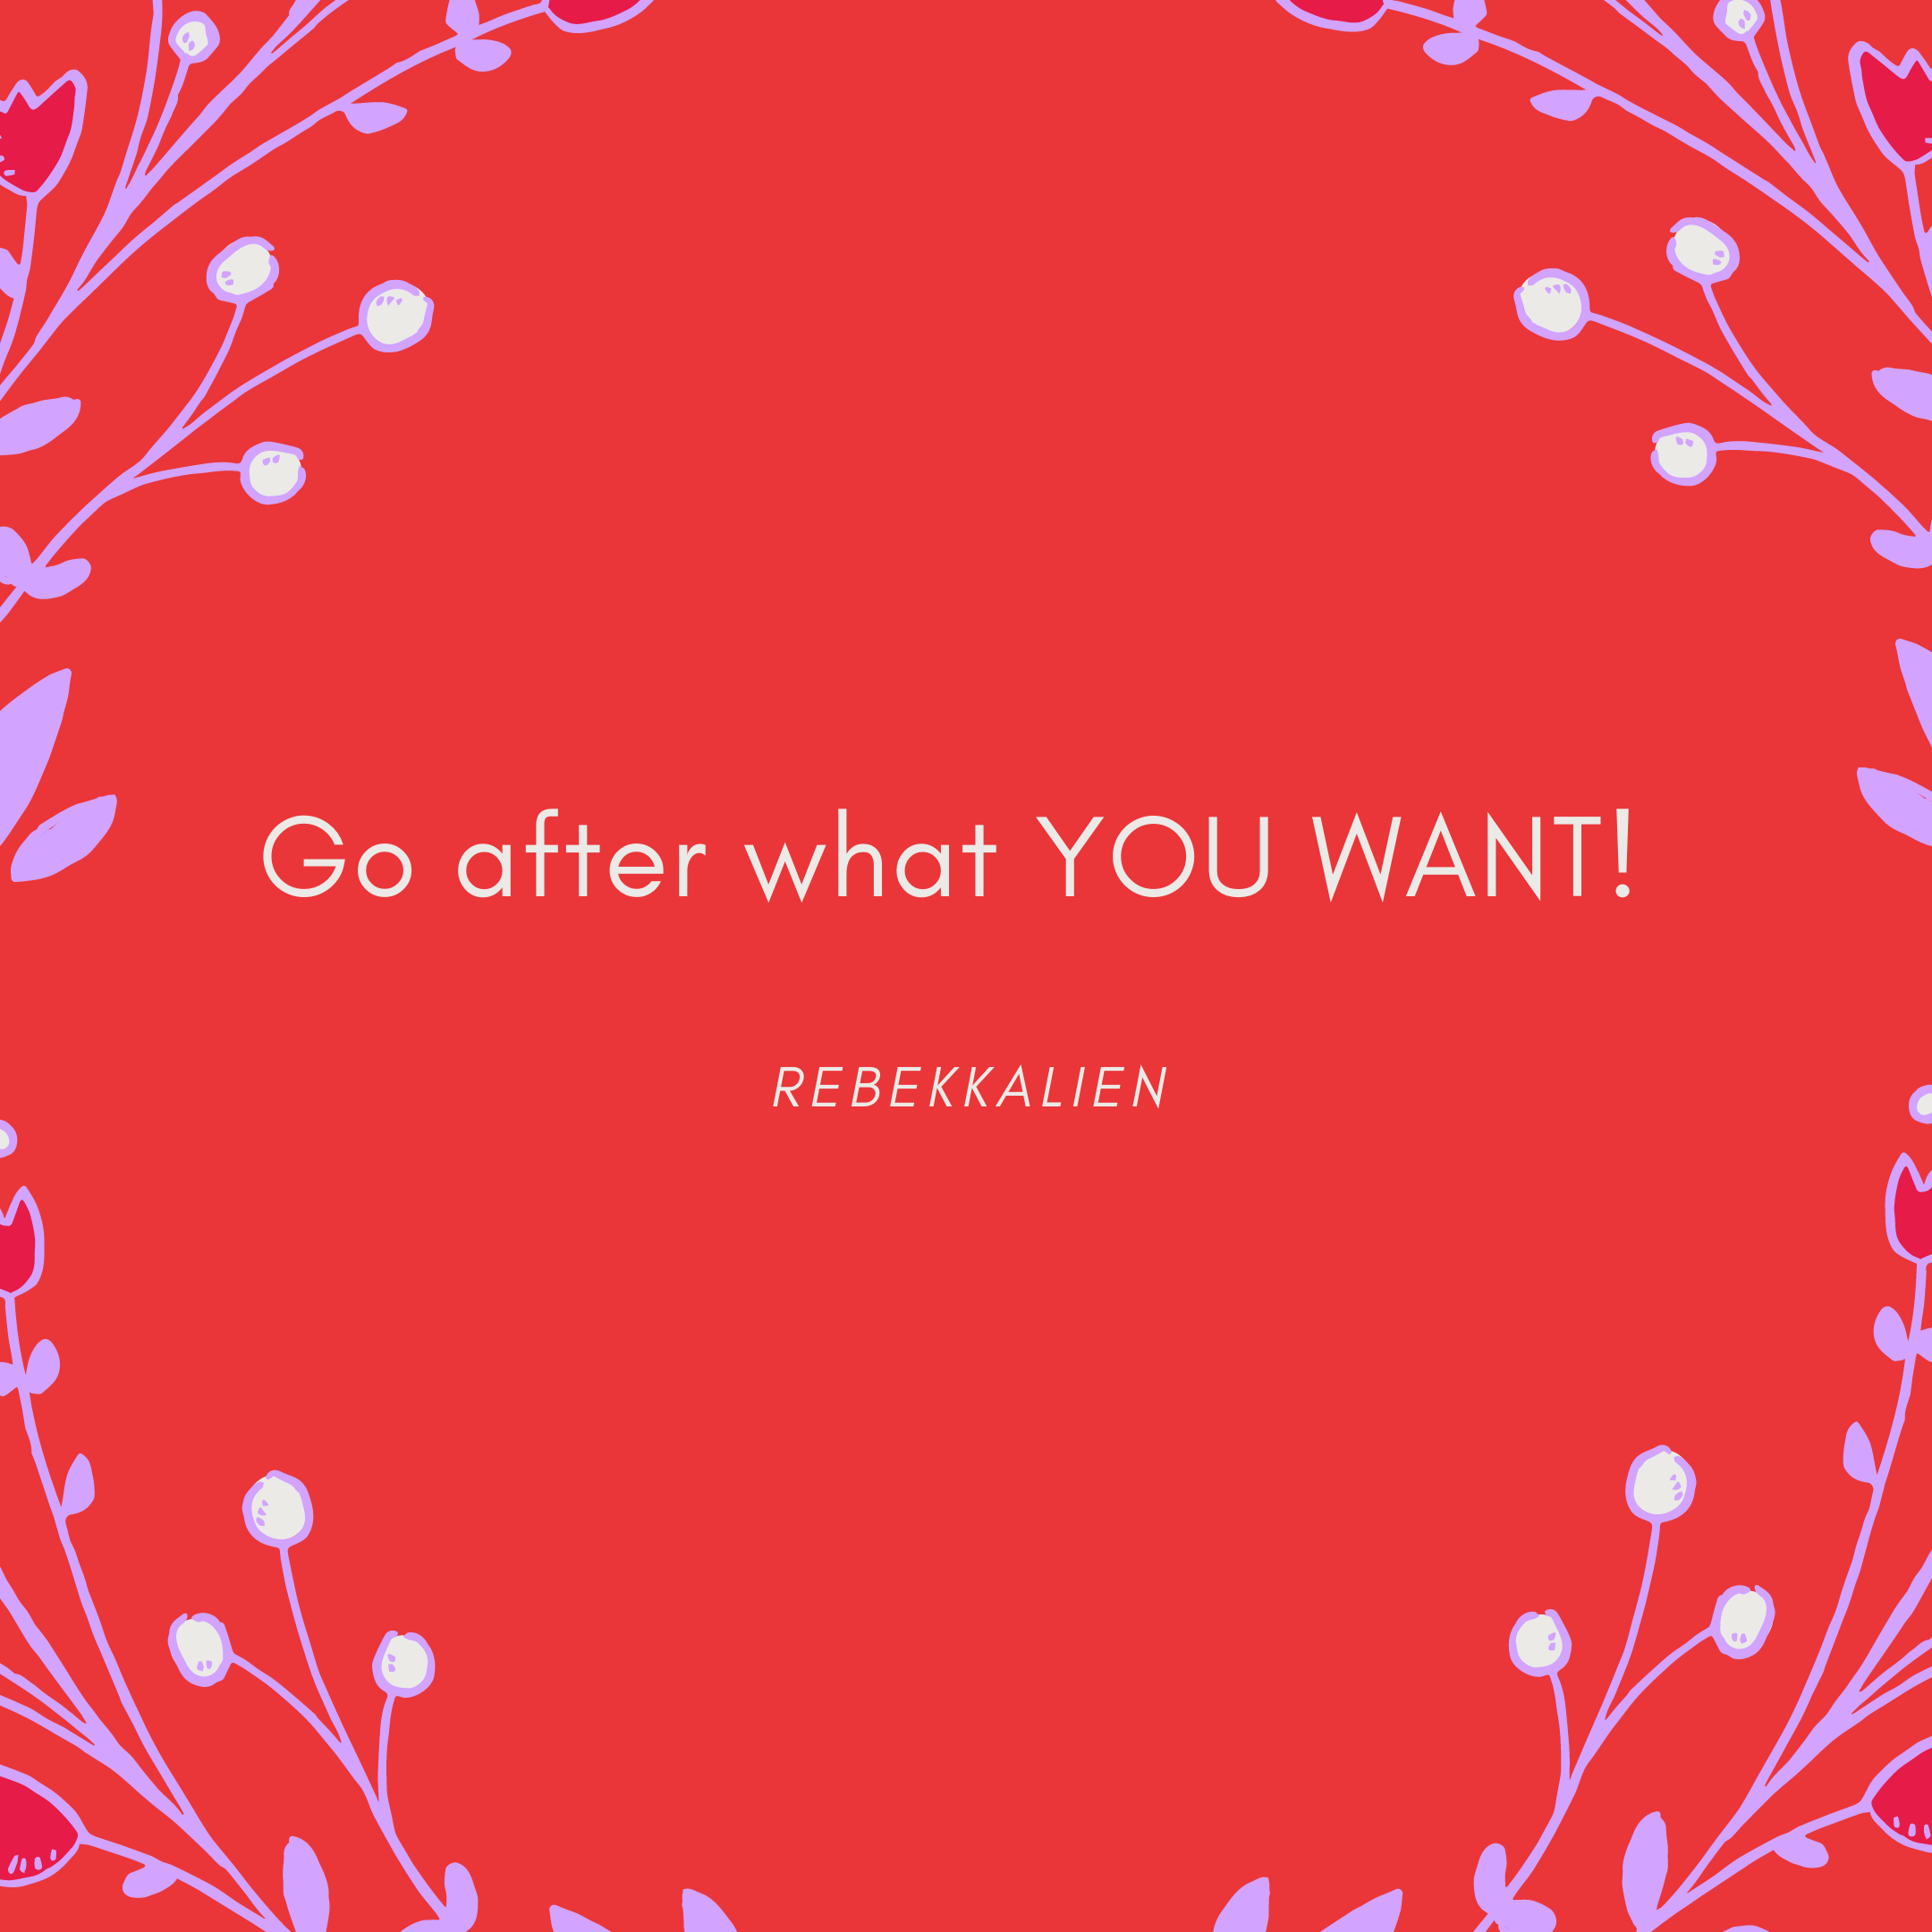 Go after what YOU WANT!.png